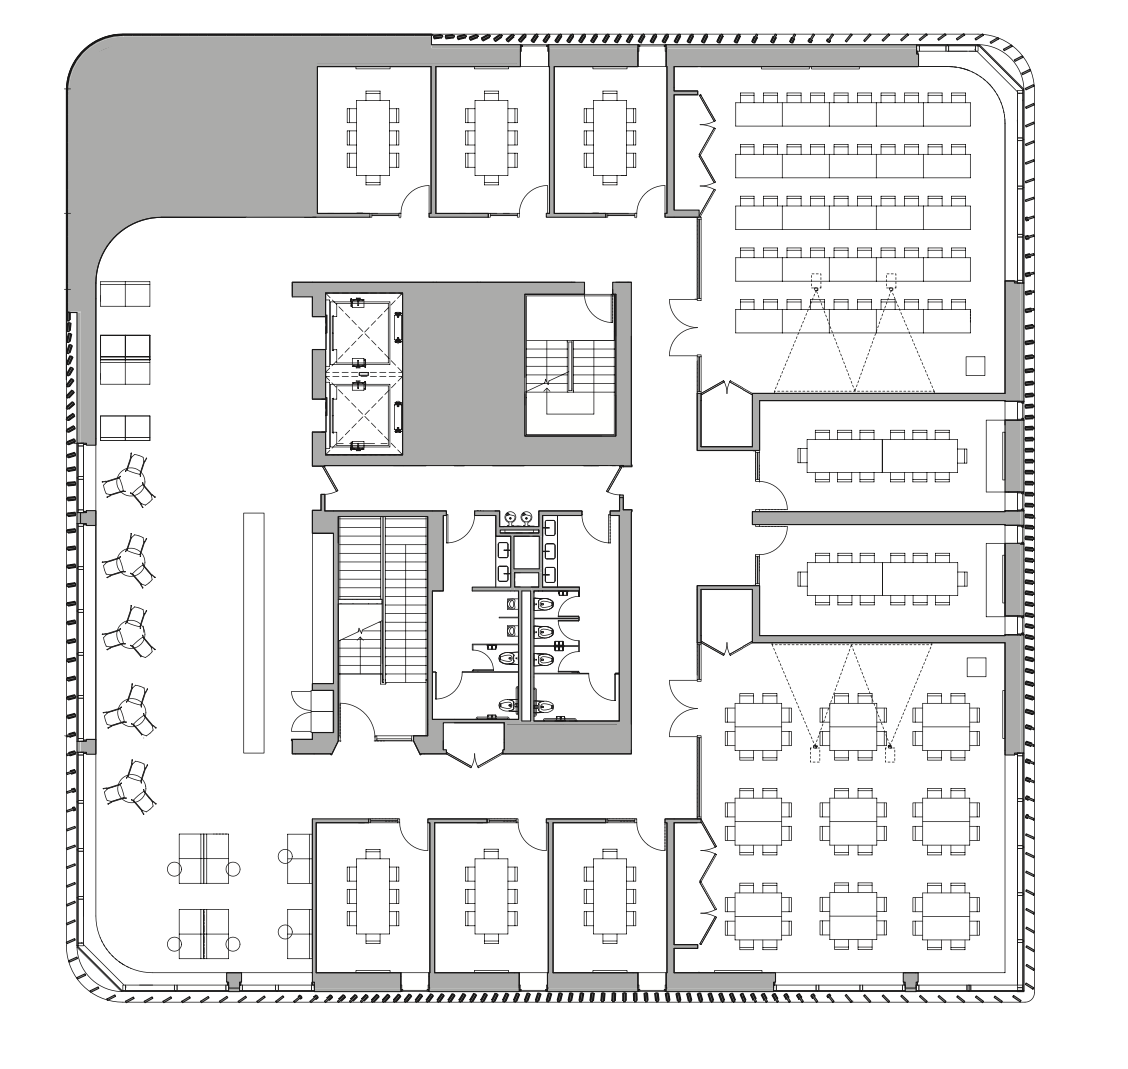 A diagram of a floorplan.